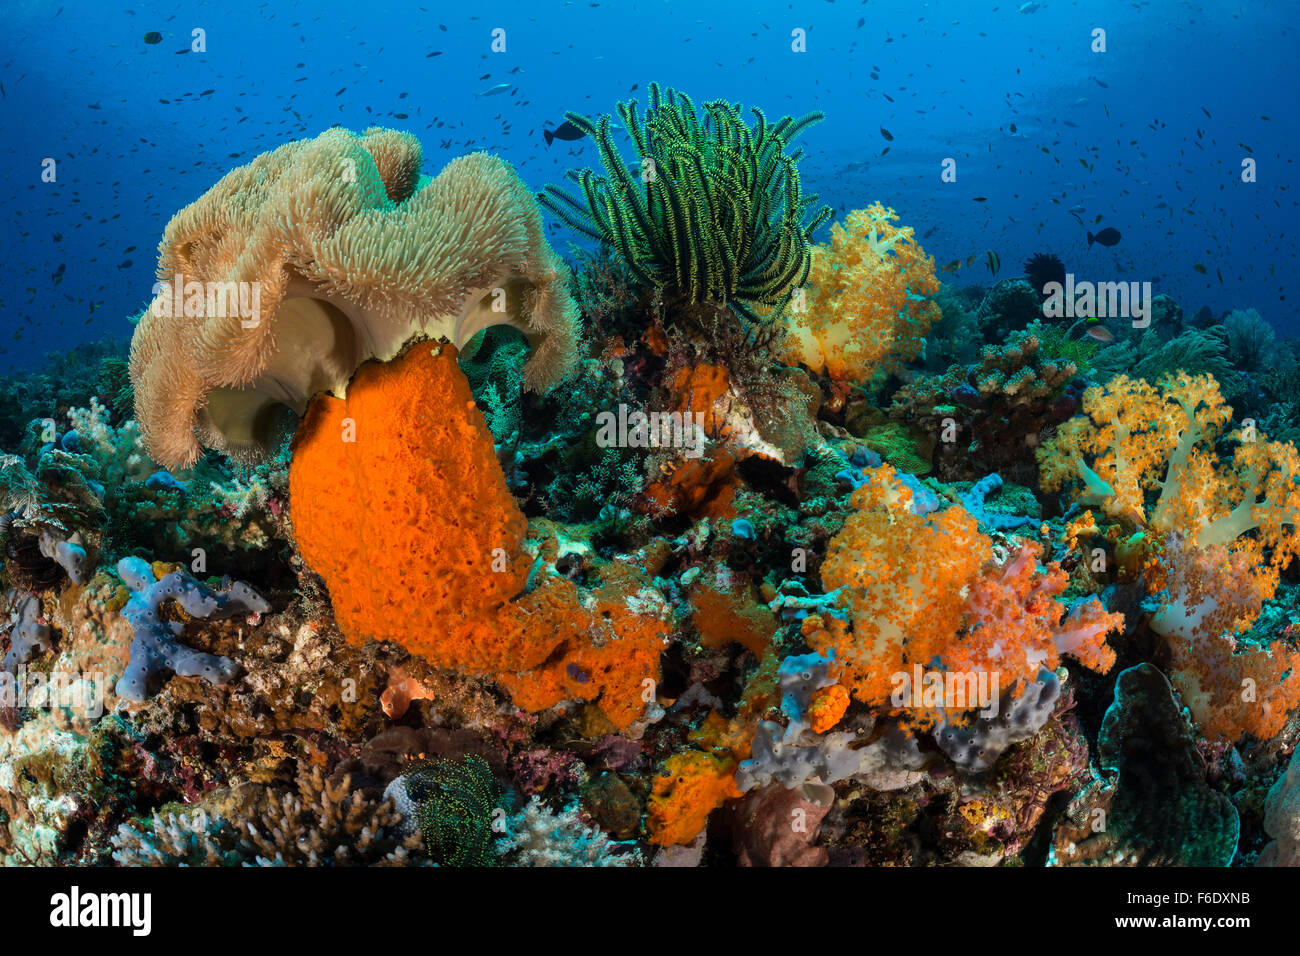 Colored Coral Reef, Komodo, Indonesia - Stock Image